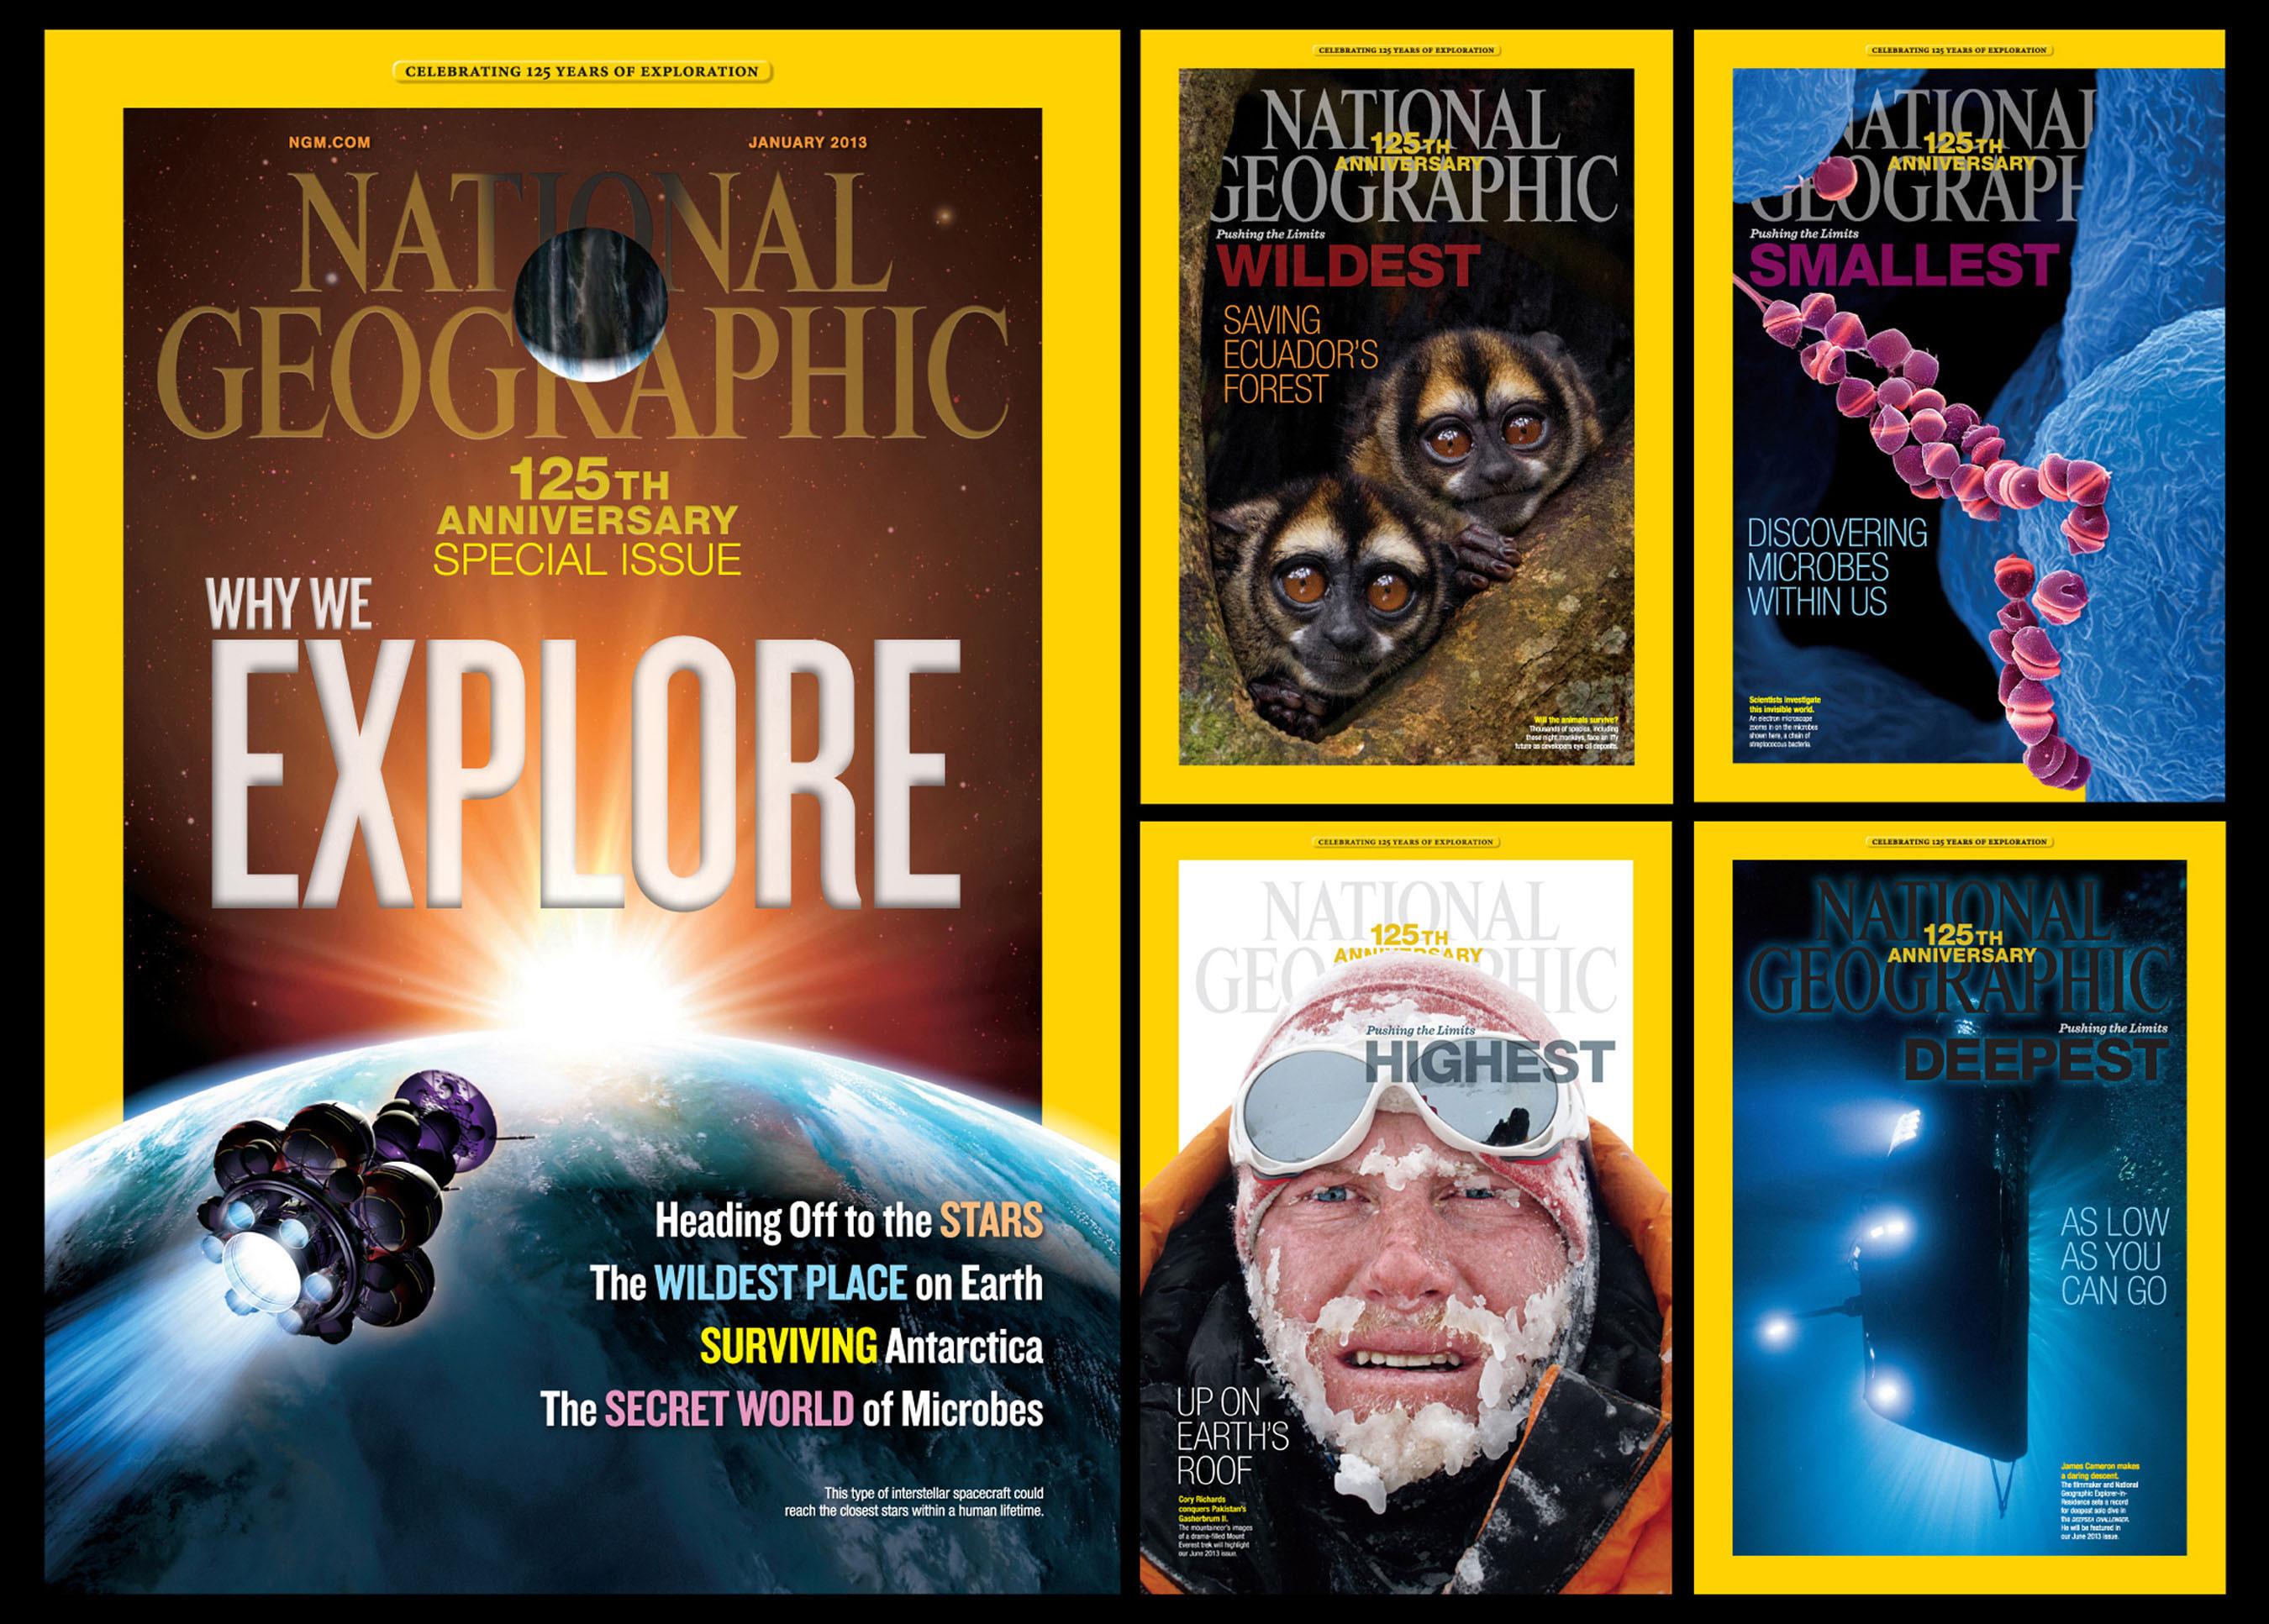 NATIONAL GEOGRAPHIC SOCIETY 125TH ANNIVERSARY